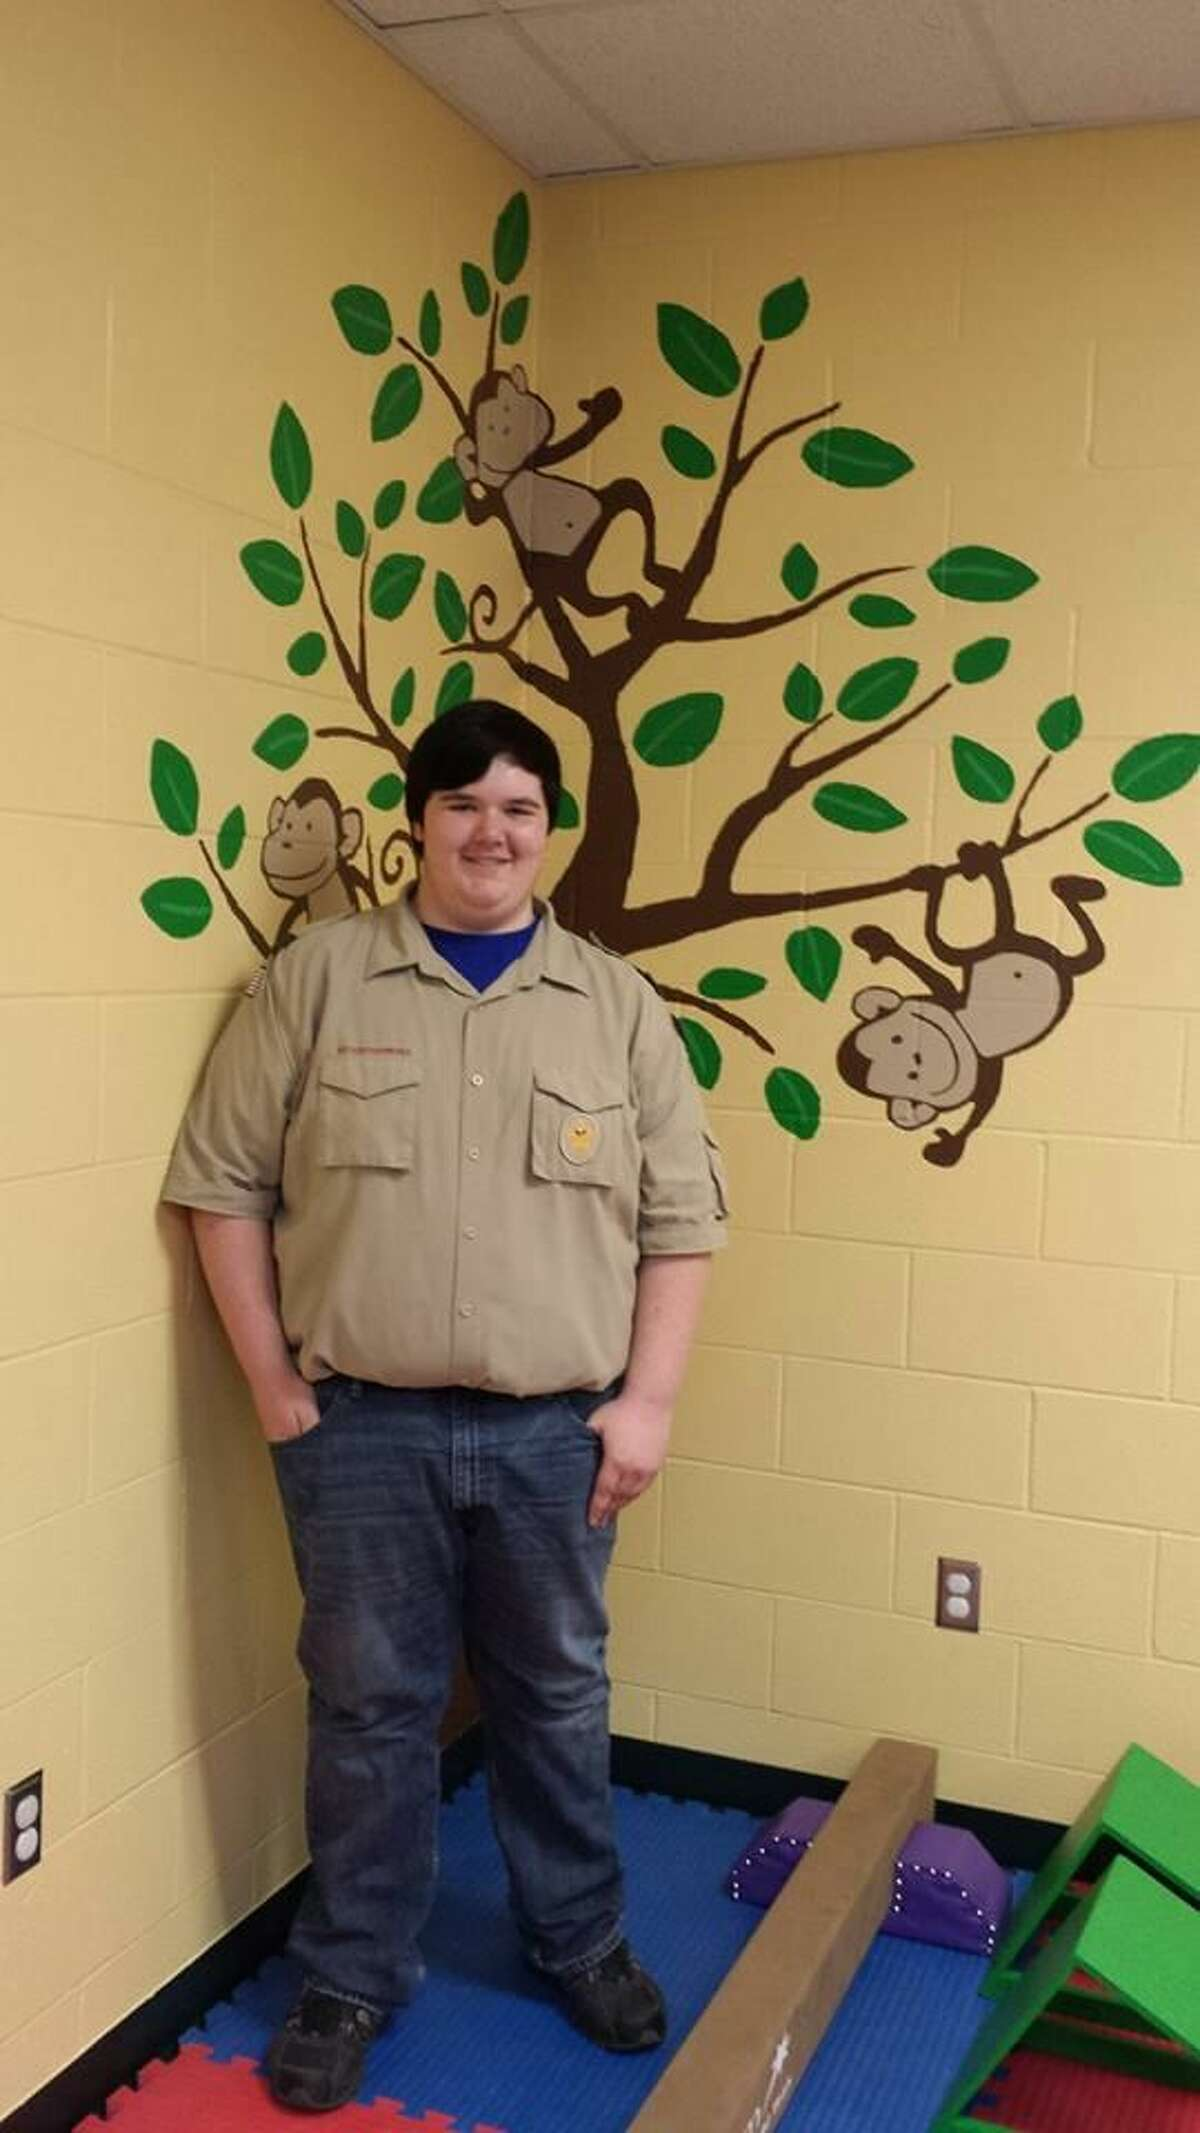 Eric Nesbitt is shown with a mural he painted.